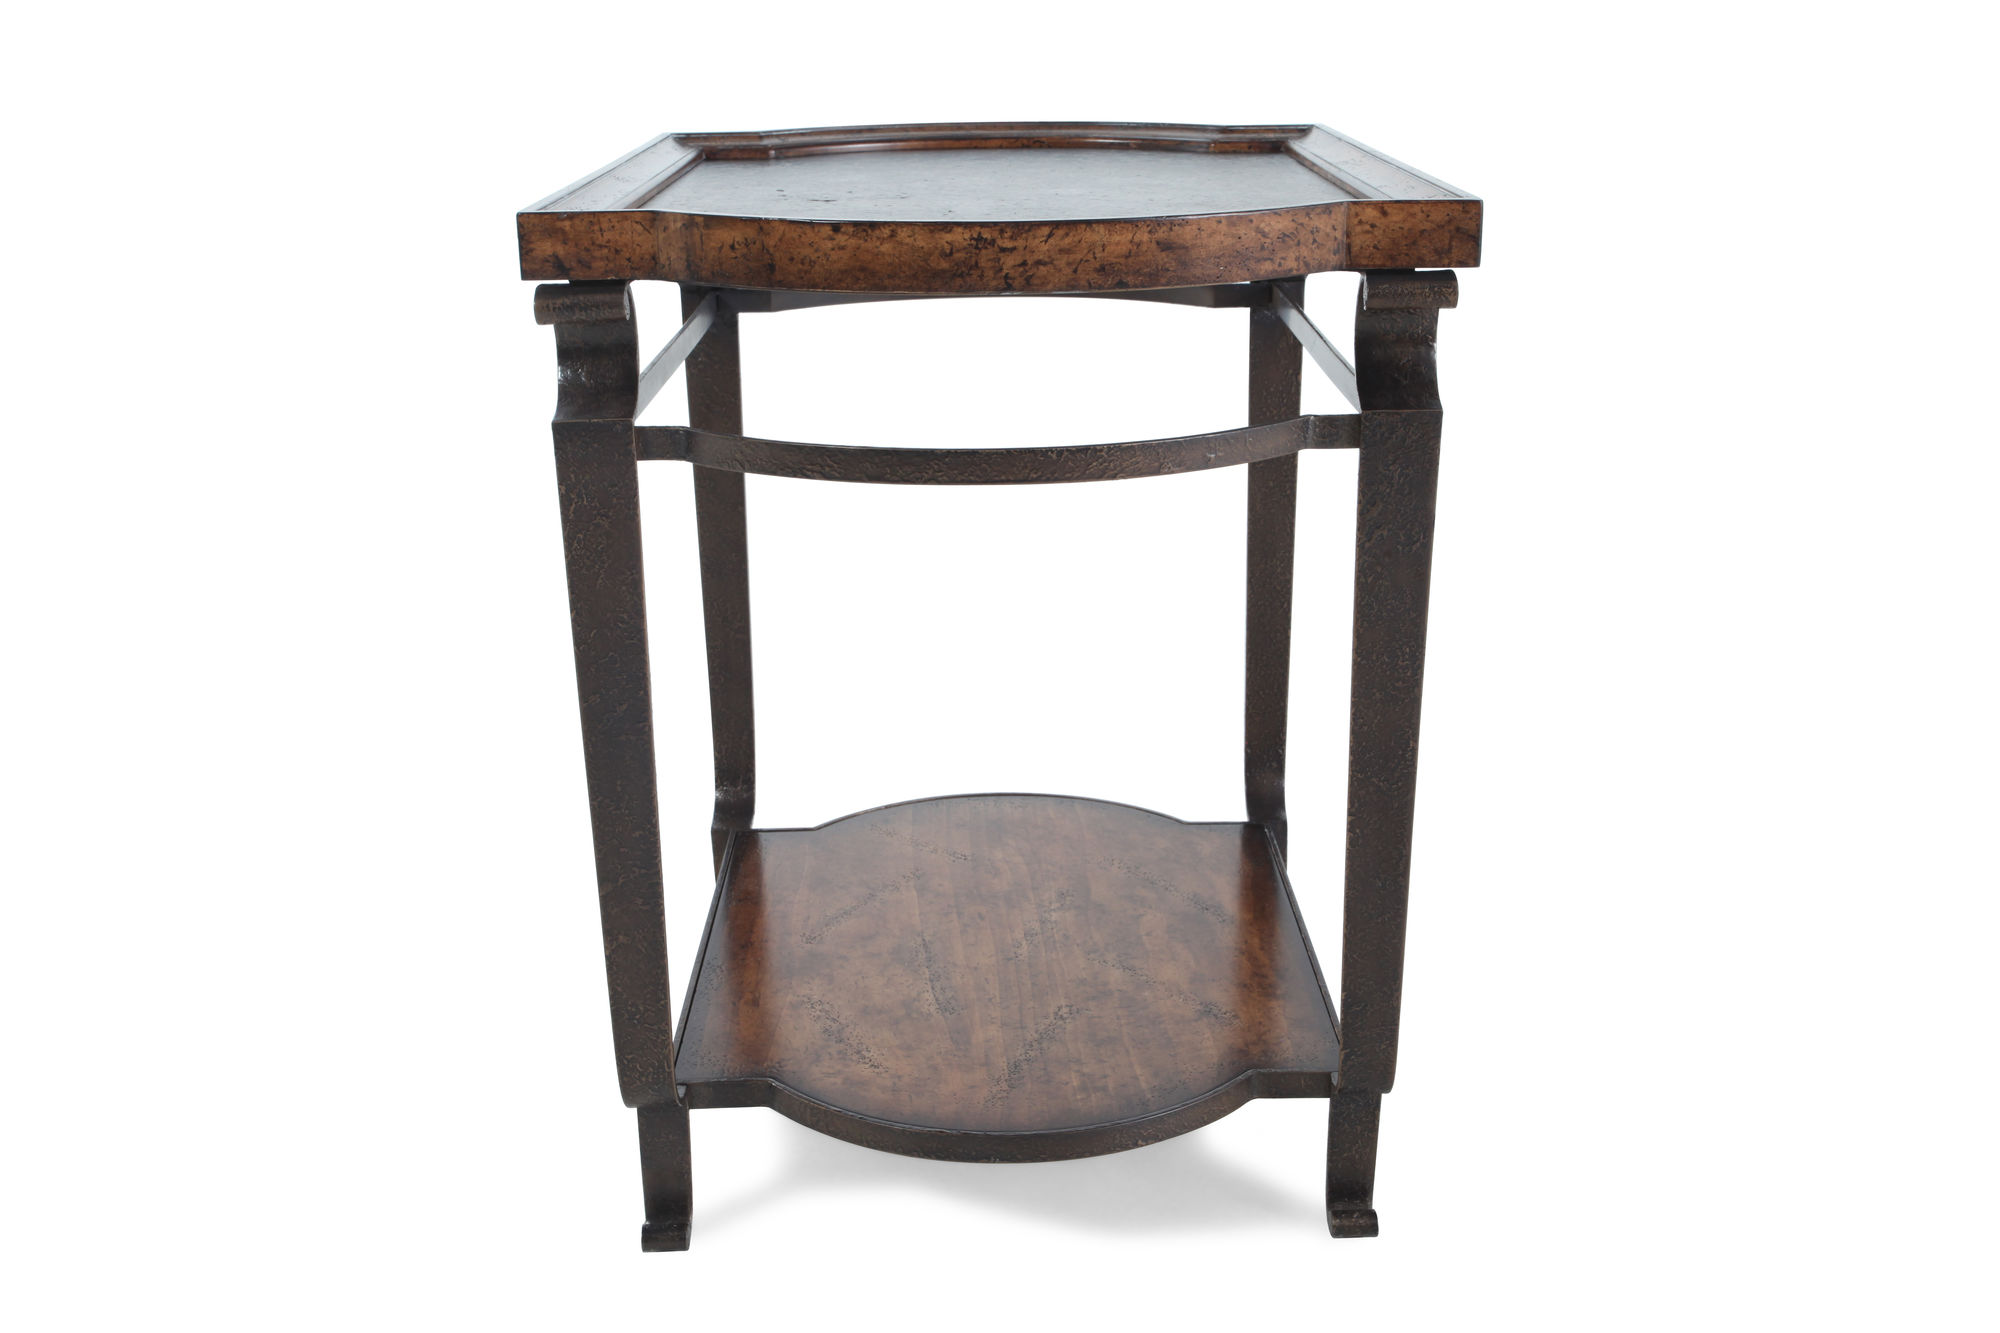 solid radiata pine tray top end table weathered nutmeg mathis artf quatrefoil wood accent astoria leather sofa purple tablecloth diy legs ideas patio umbrella hole insert drum